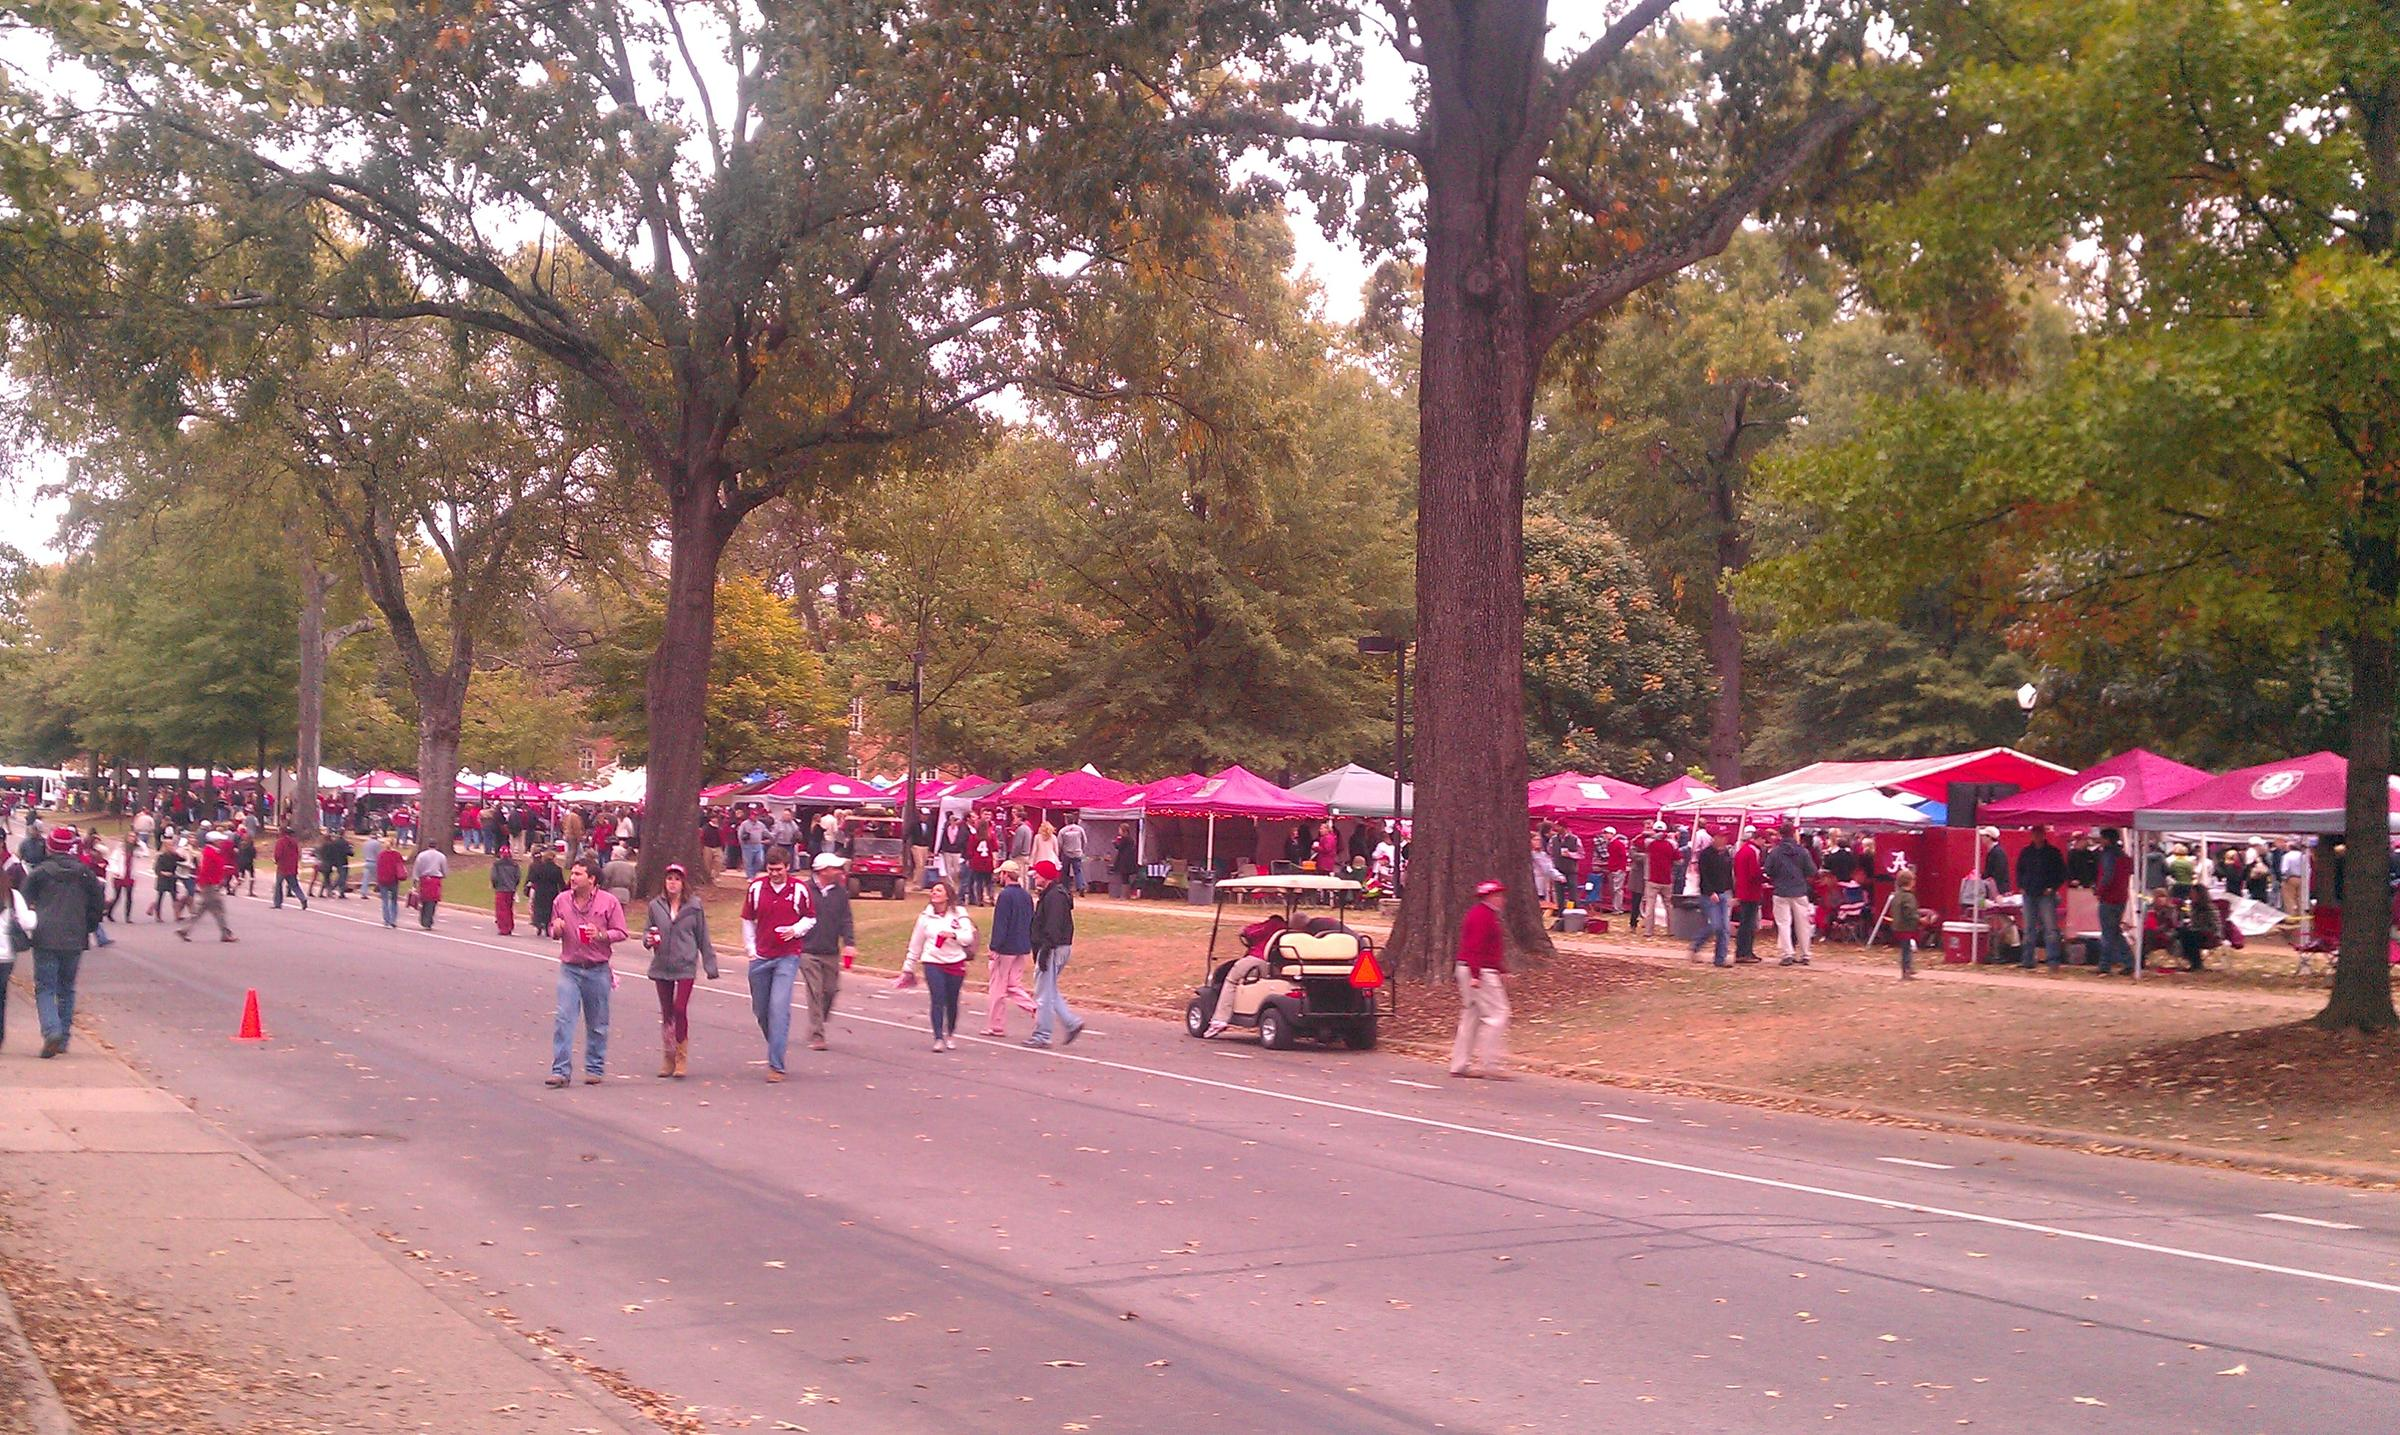 Tailgaters at University of Alabama Homecoming & A look at Alabama Tailgating | Alabama Public Radio